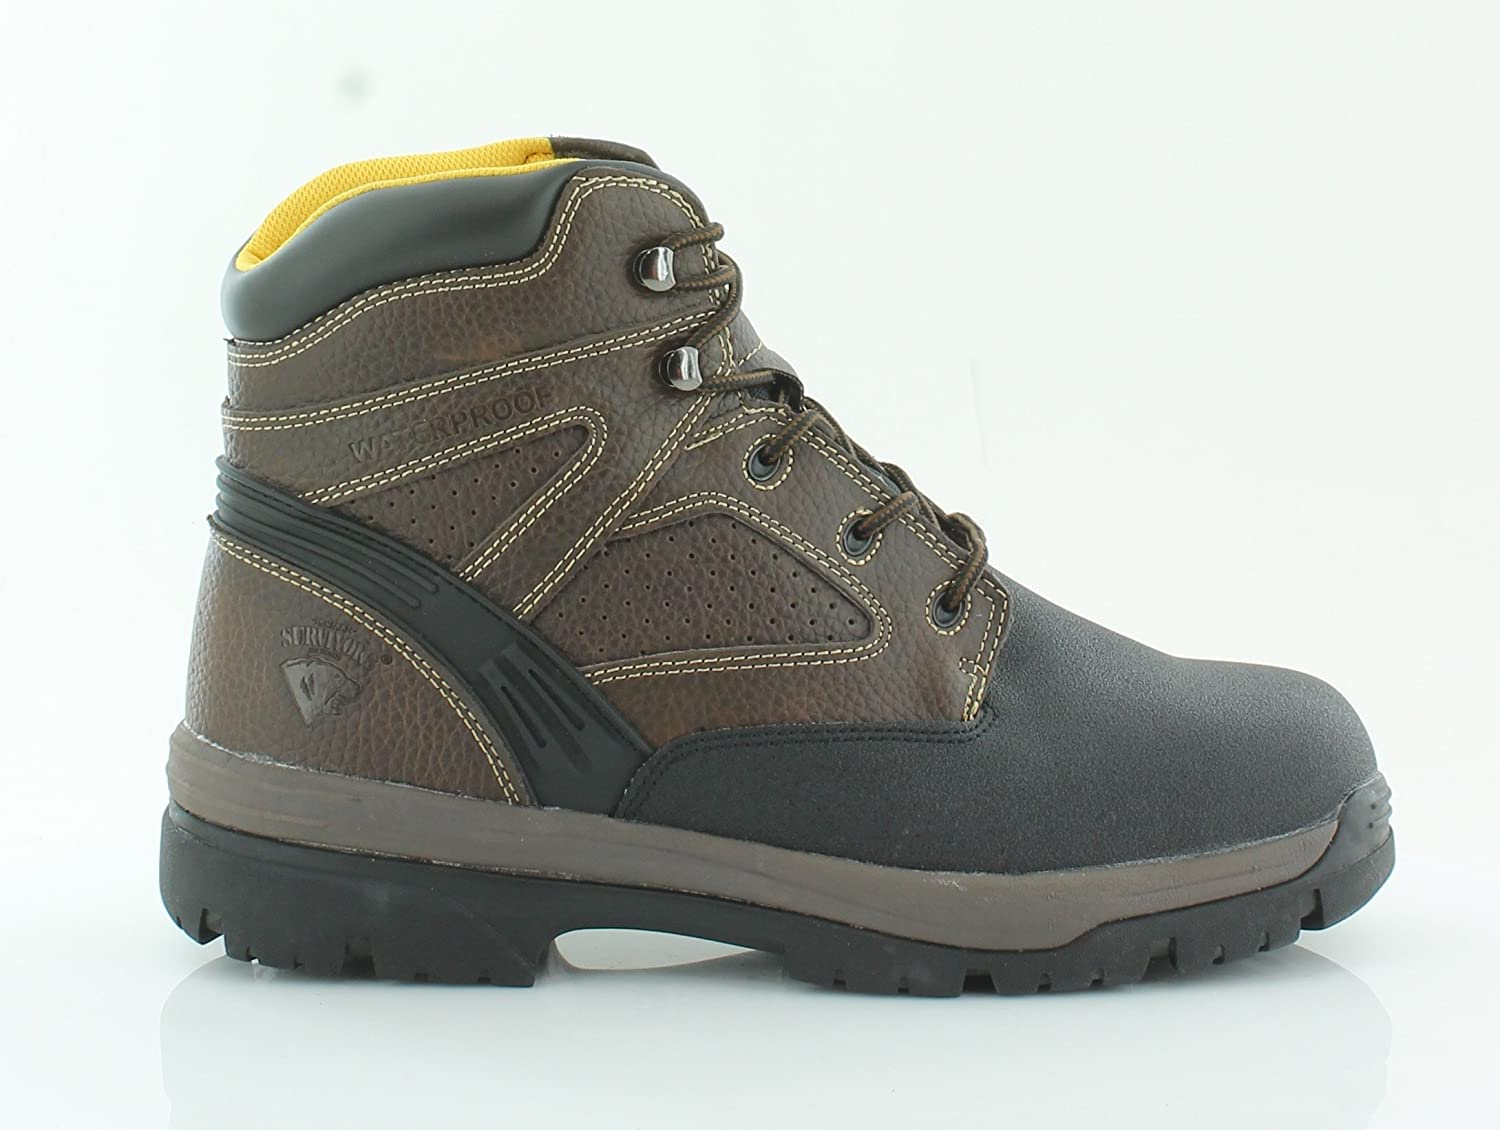 huge discount ec9c0 ed6b6 ... Amazon.com Herman Survivor Boots (11) Backpacking Boots Nike Introduces  the NikeLab ACG ...